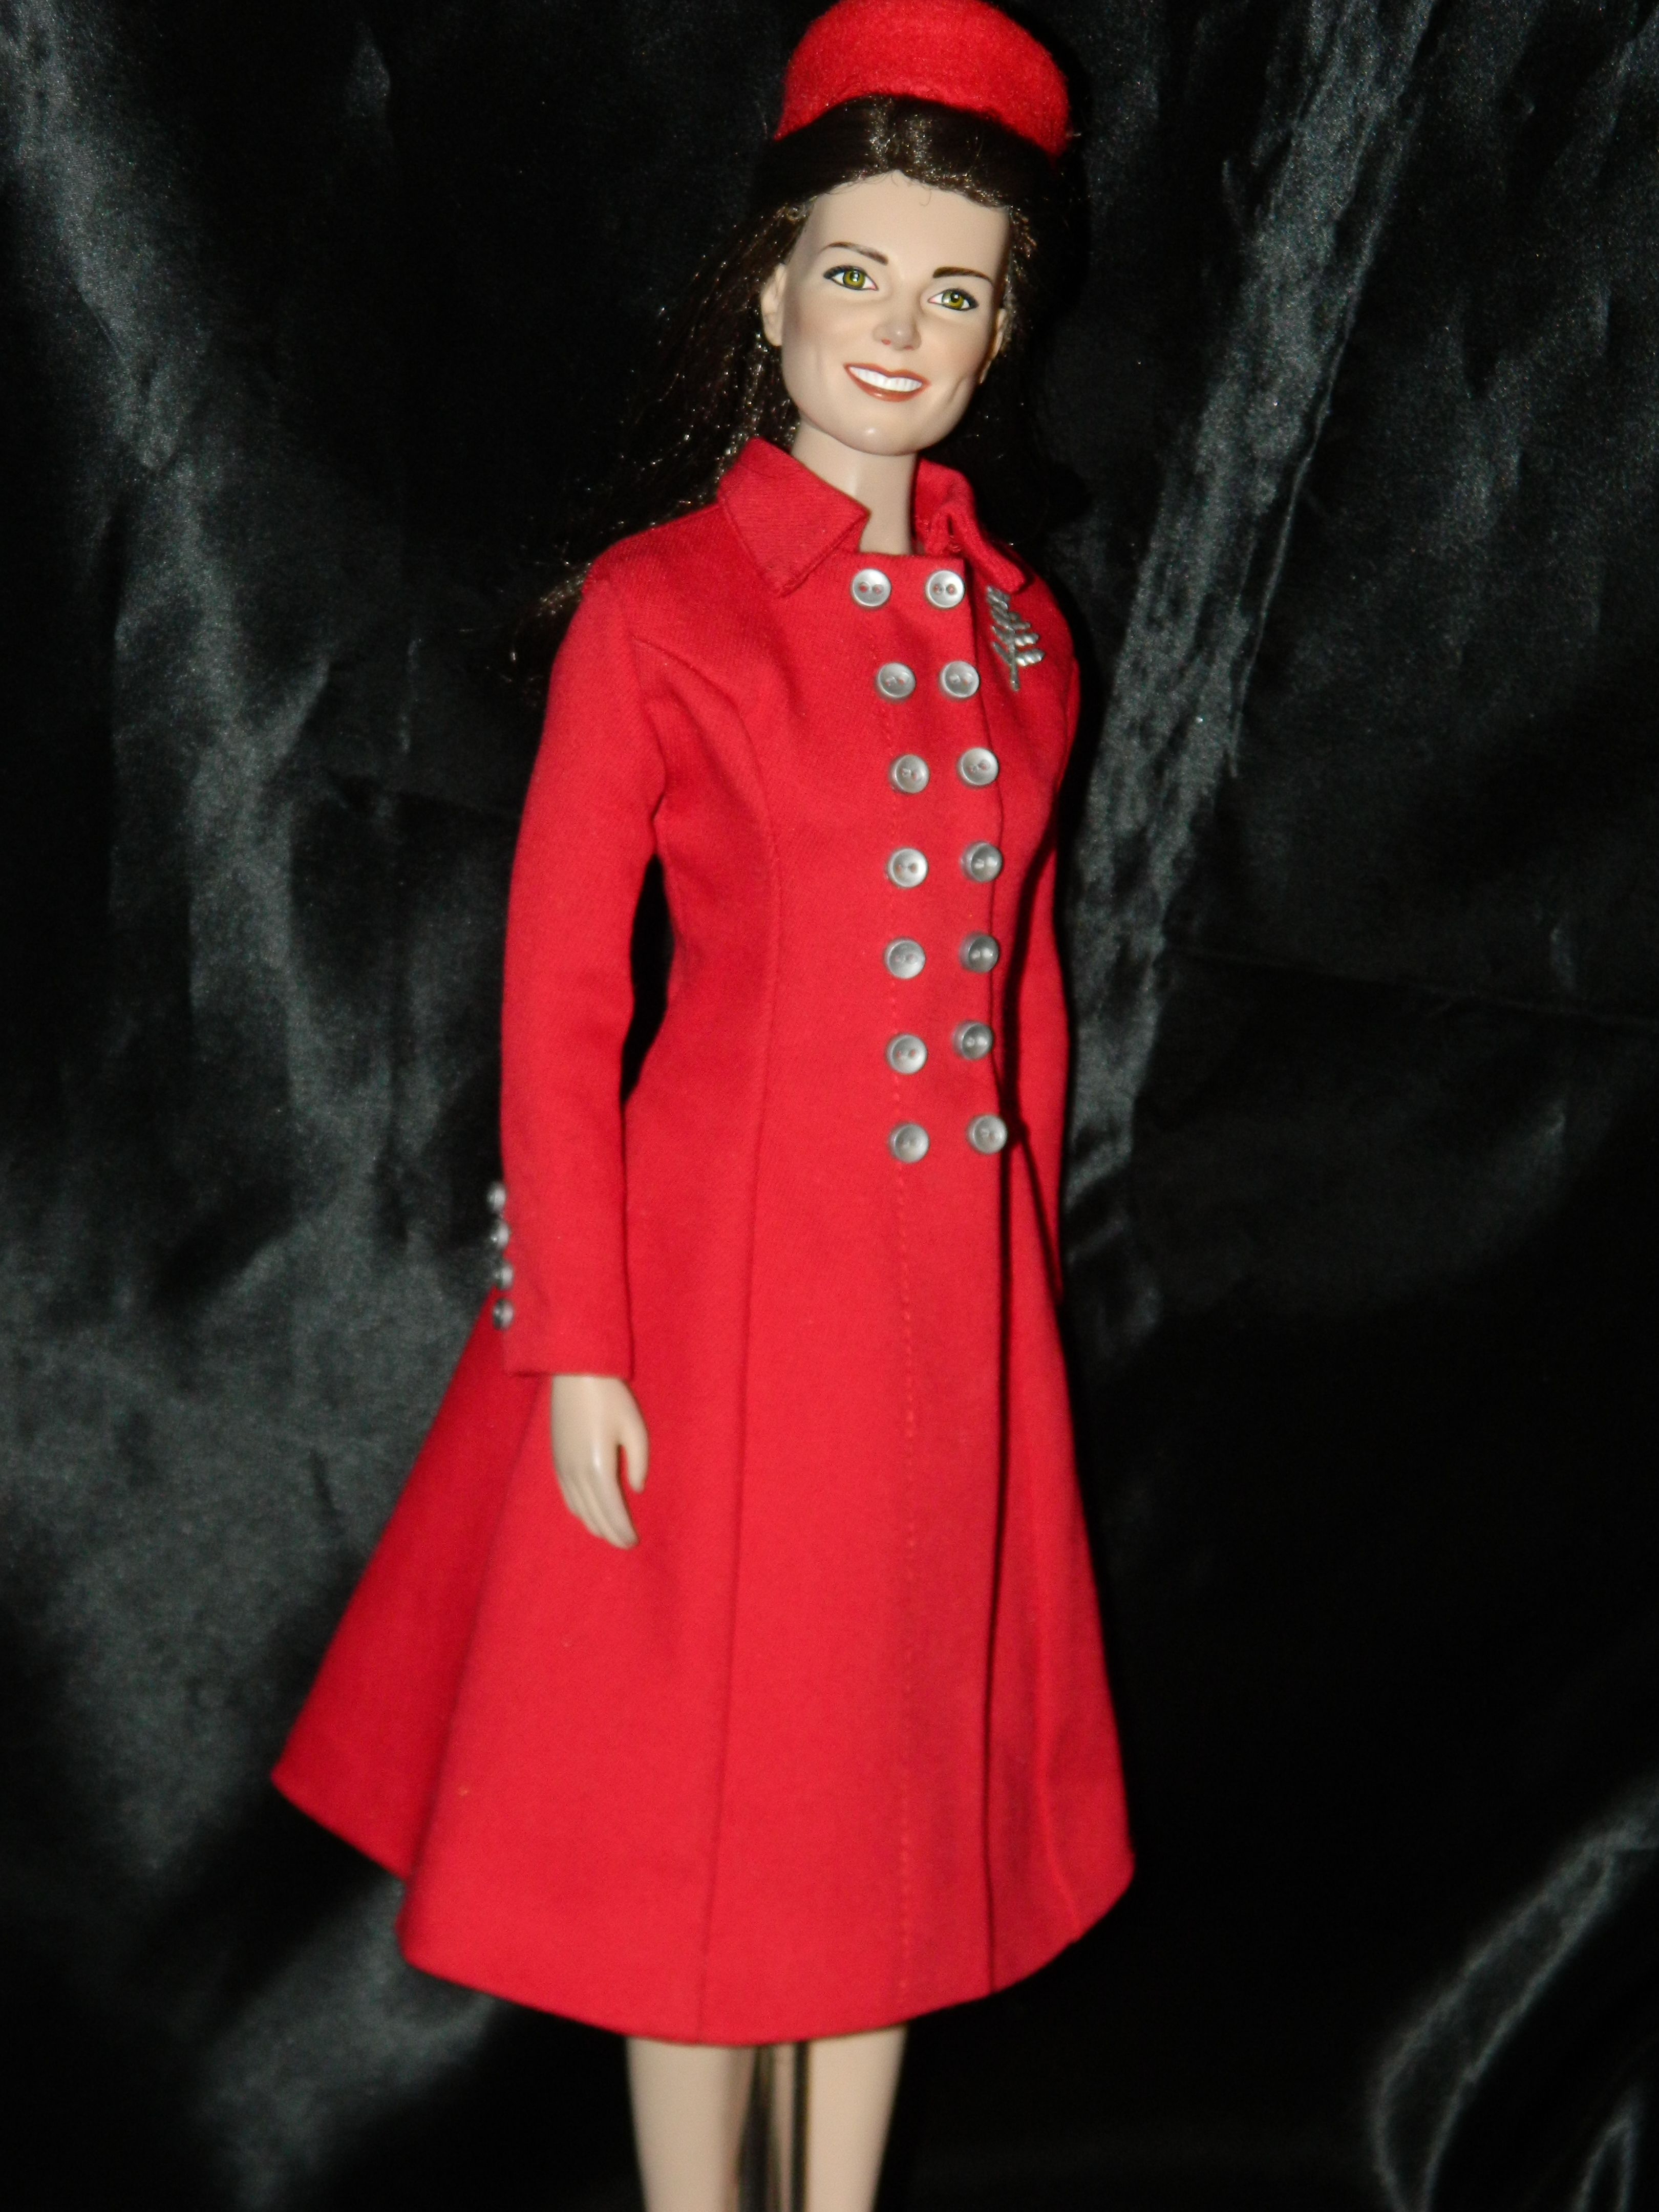 Kate doll Red coat and hat Fashion, Doll dress